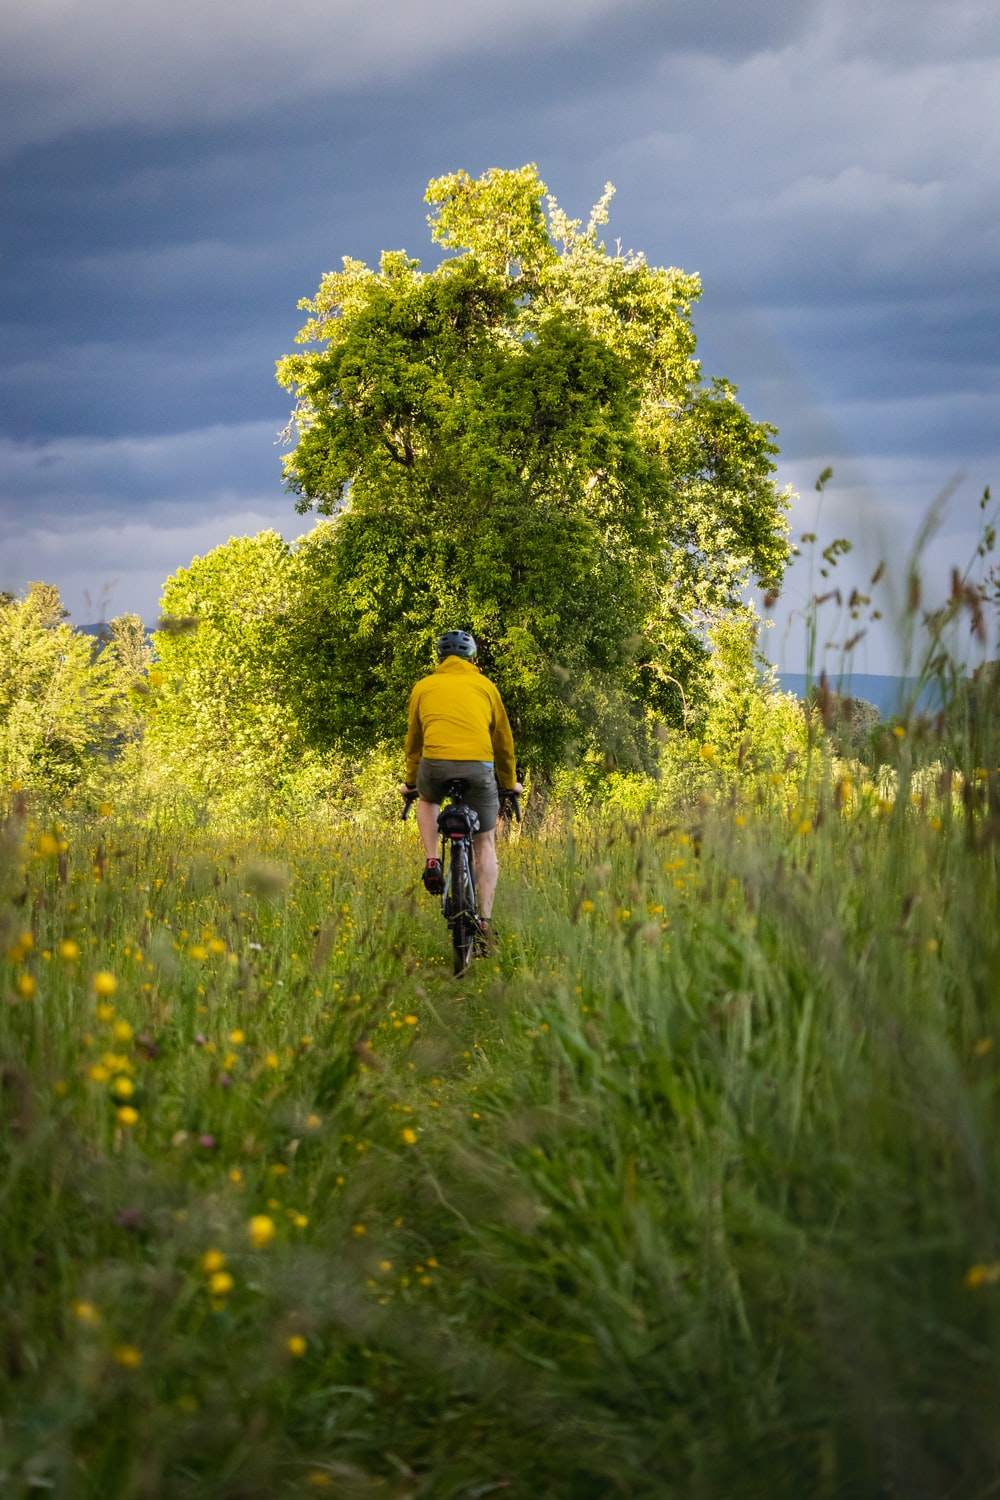 man in yellow shirt riding bicycle on green grass field during daytime